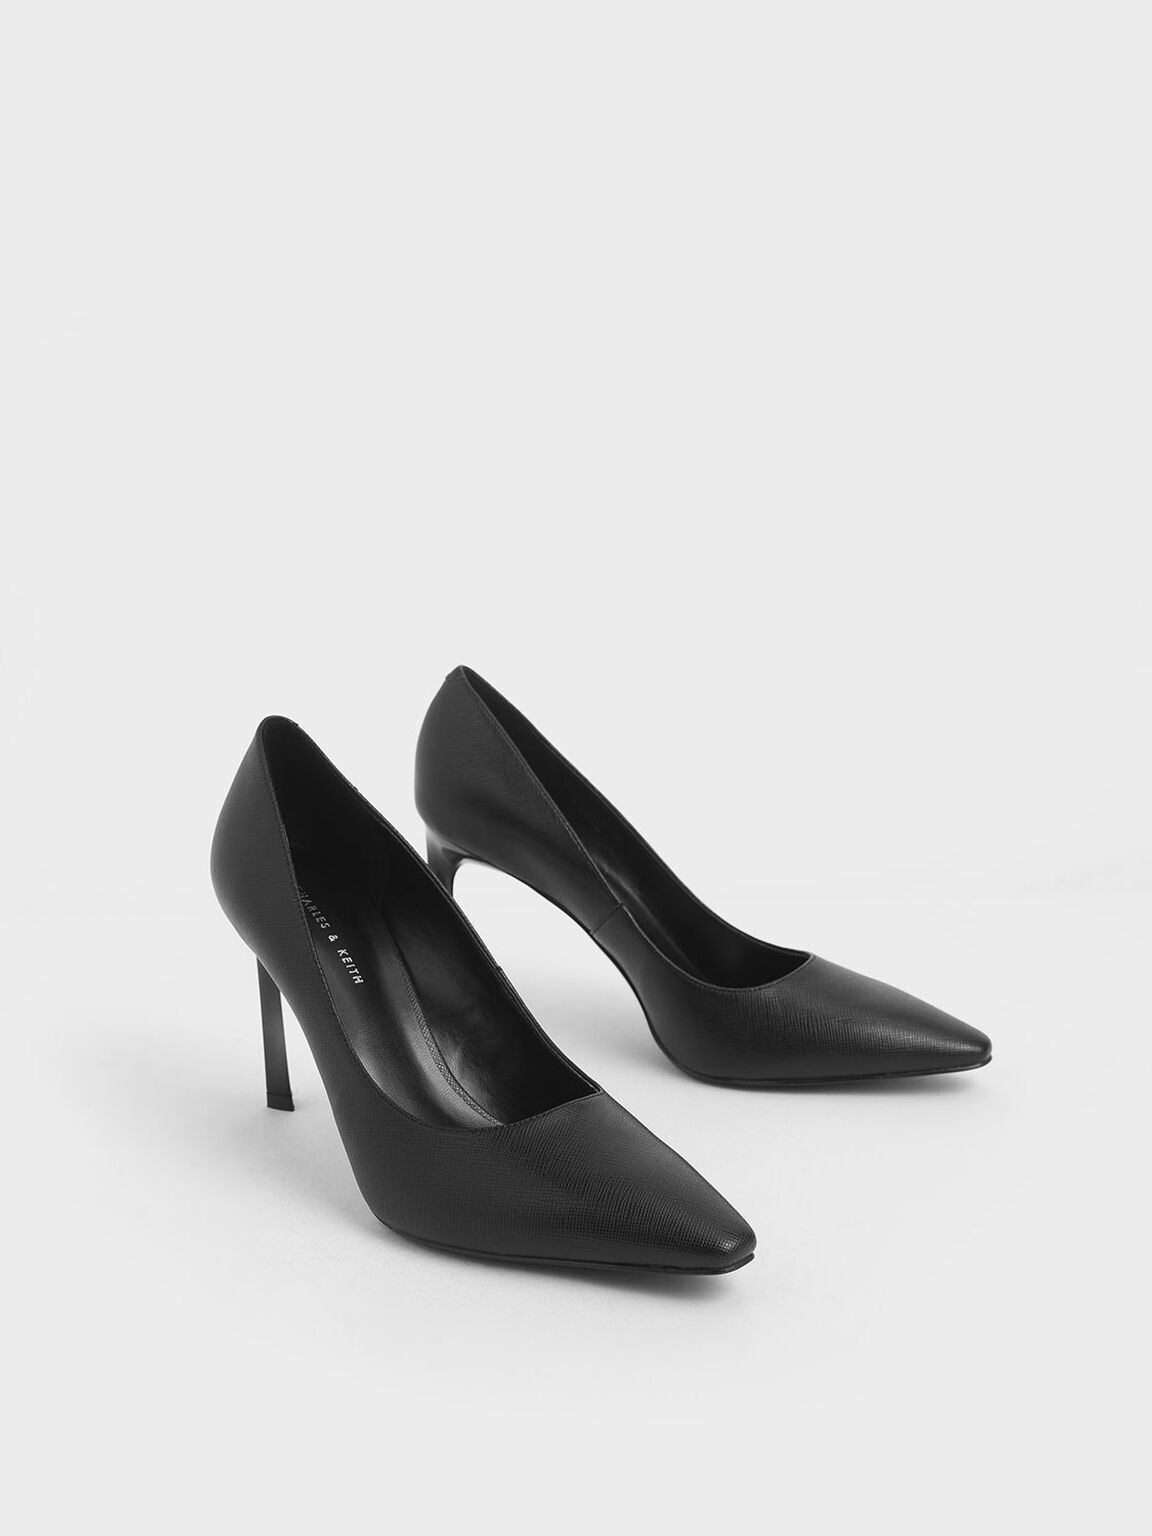 Sculptural Stiletto Pumps, Black, hi-res